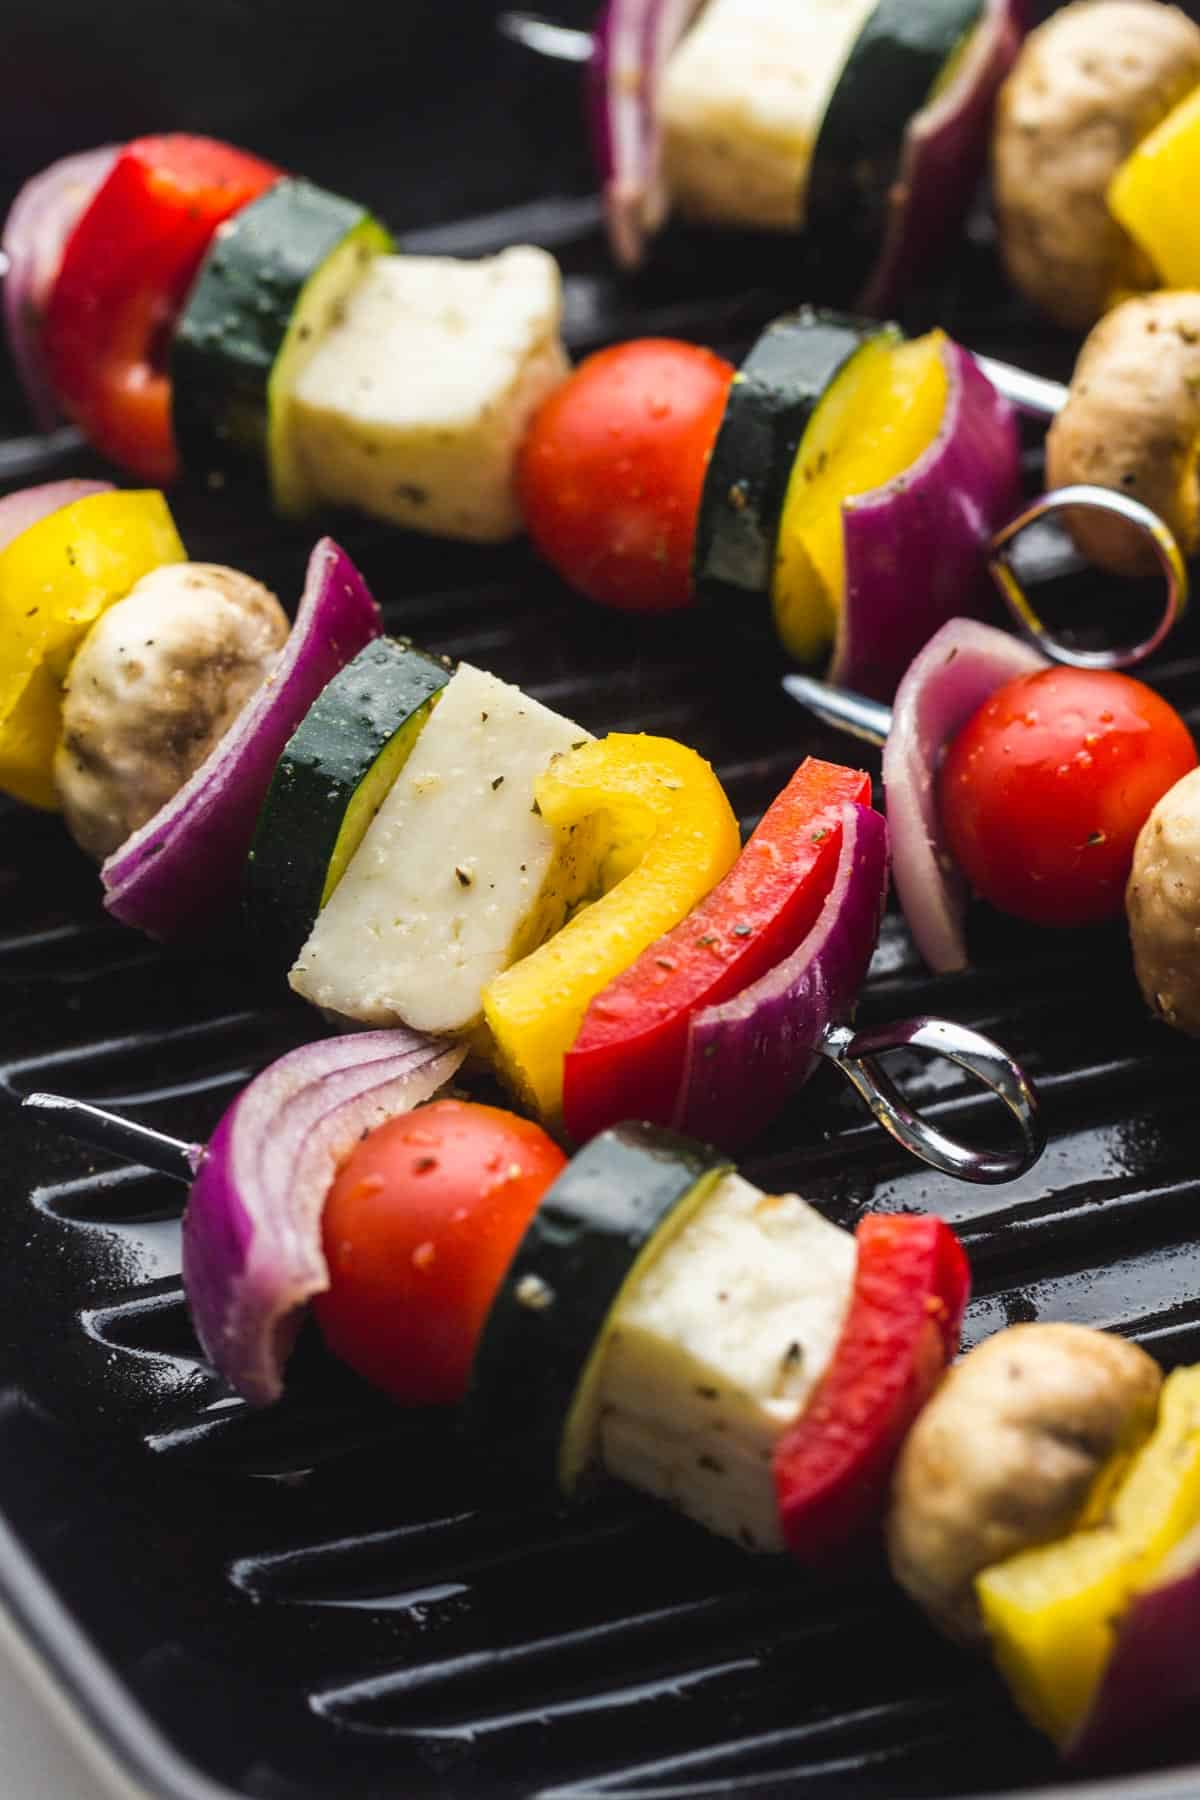 Veggie kabobs on skewers being grilled on a cast iron grill pan